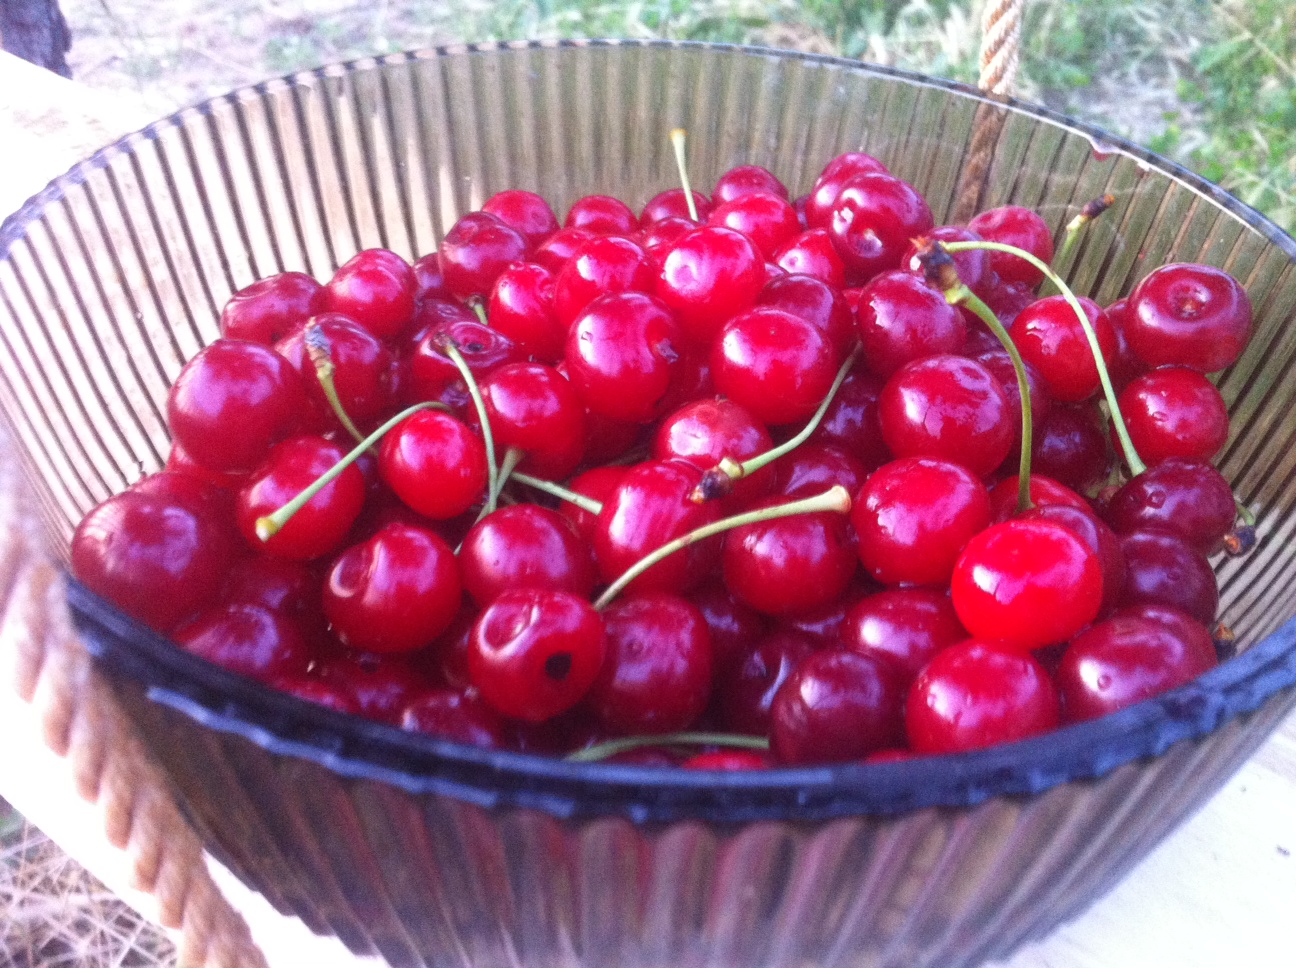 HAVE YOUR OWN FRESH CHERRIES!